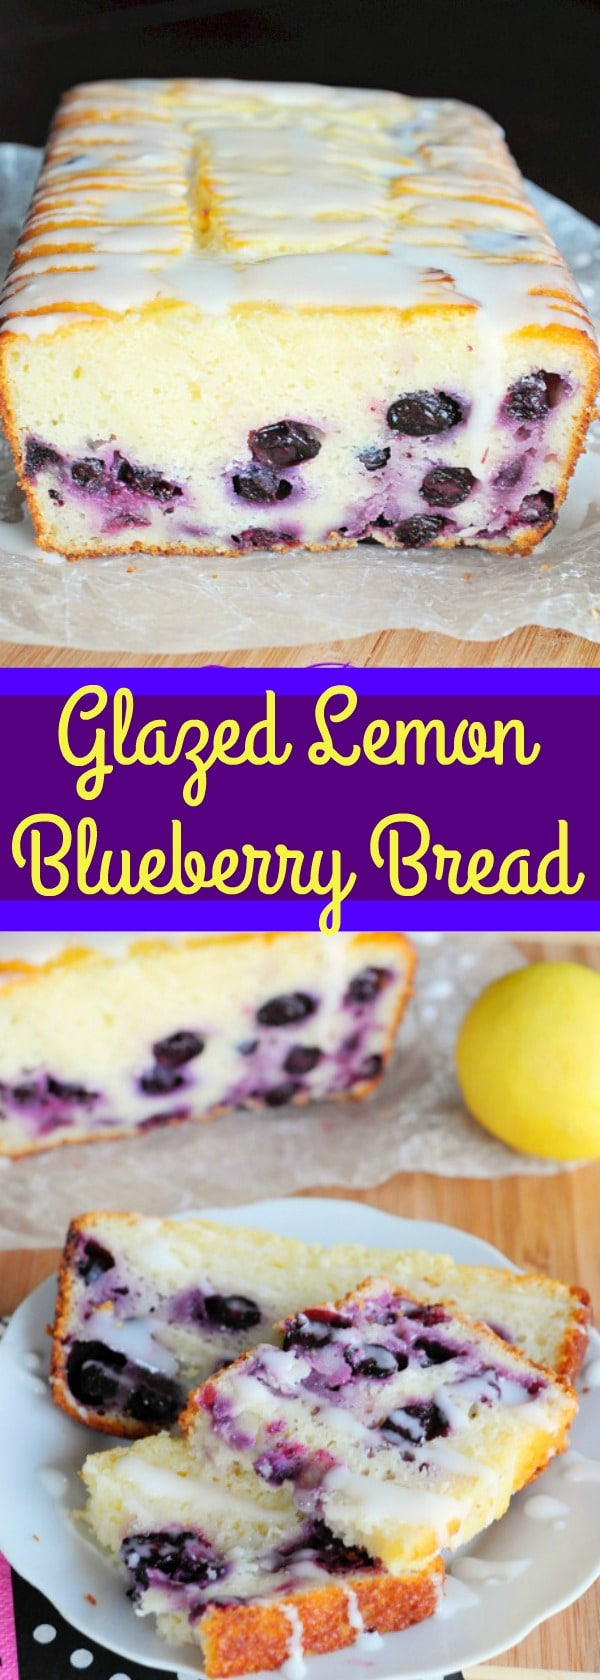 Glazed Lemon Blueberry Bread